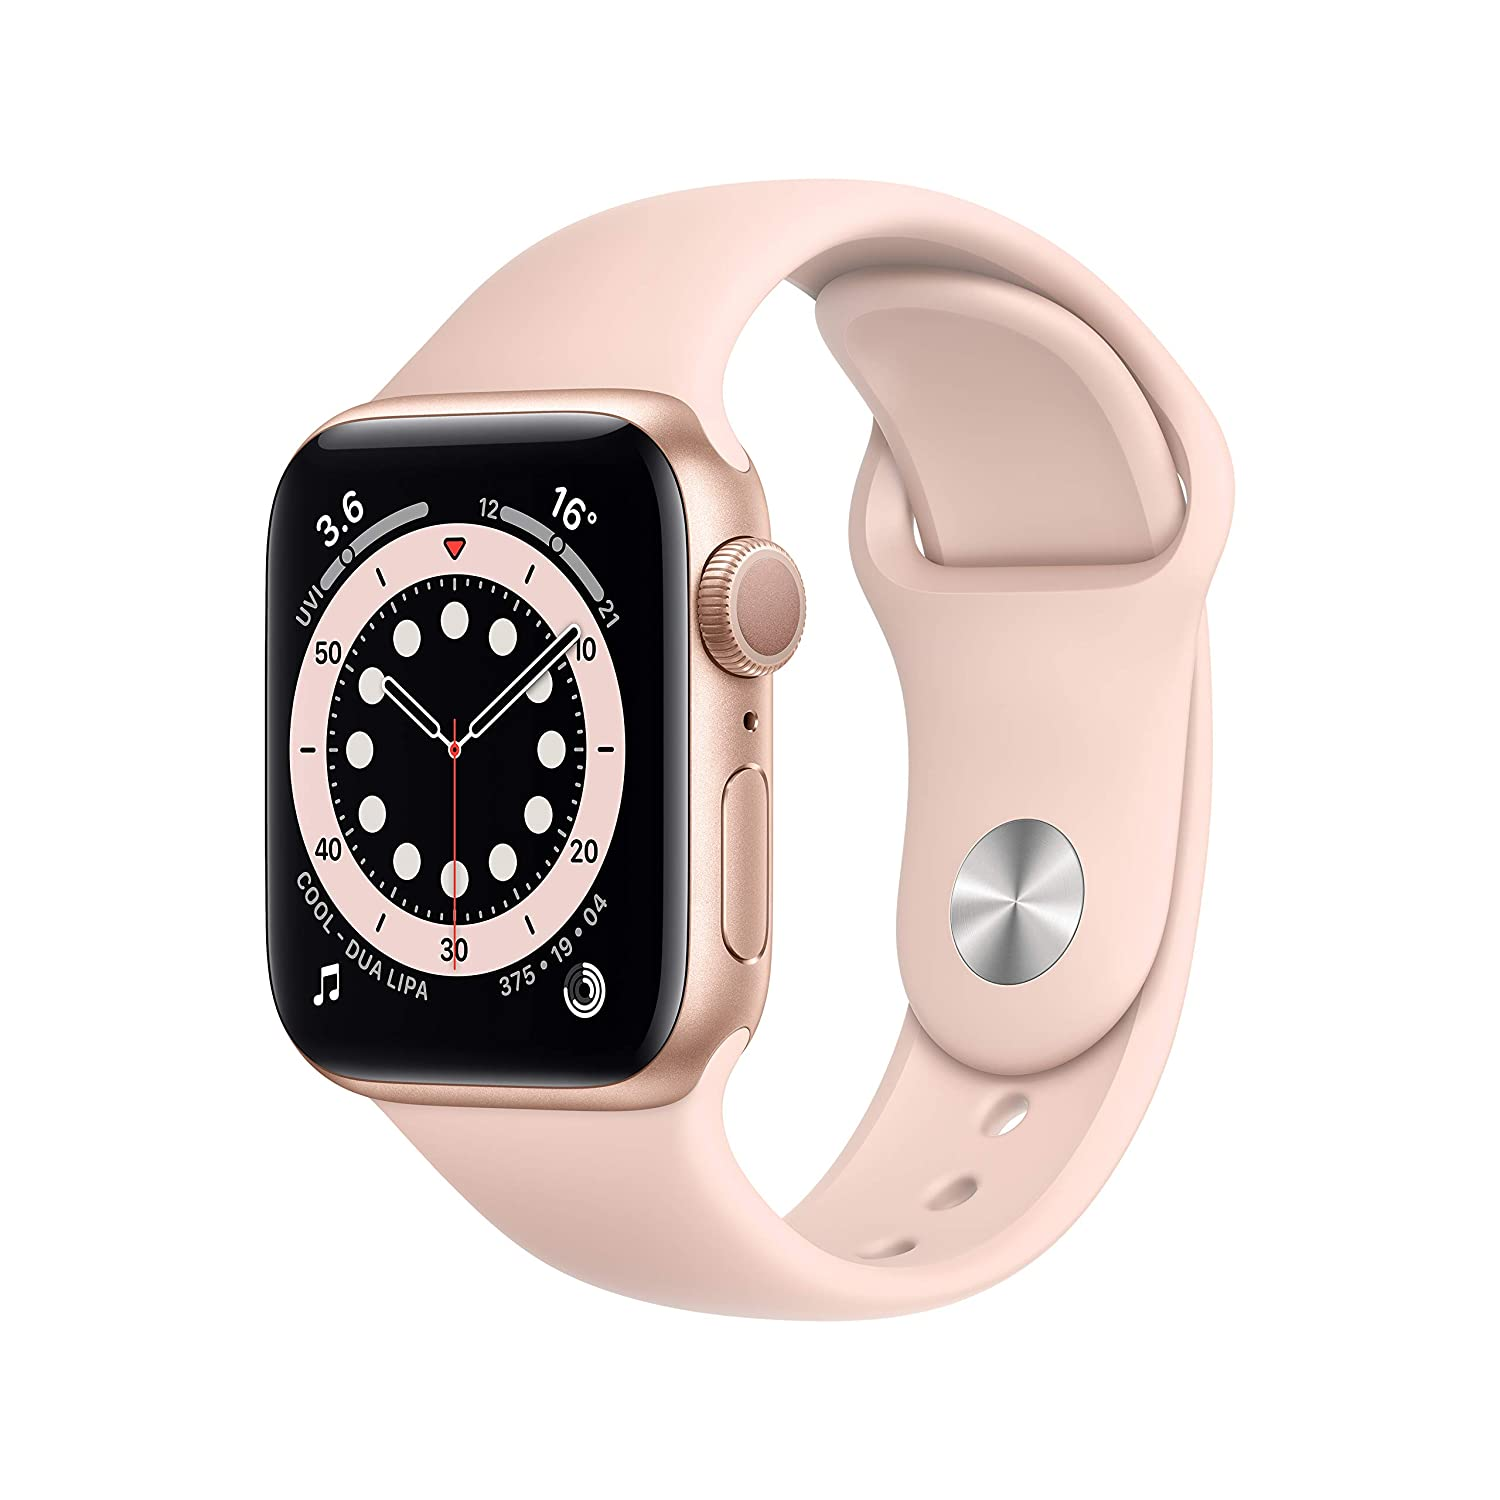 New Apple Watch Series 6 Gps 40mm Gold Aluminium Case With Pink Sand Sport Band Amazon In